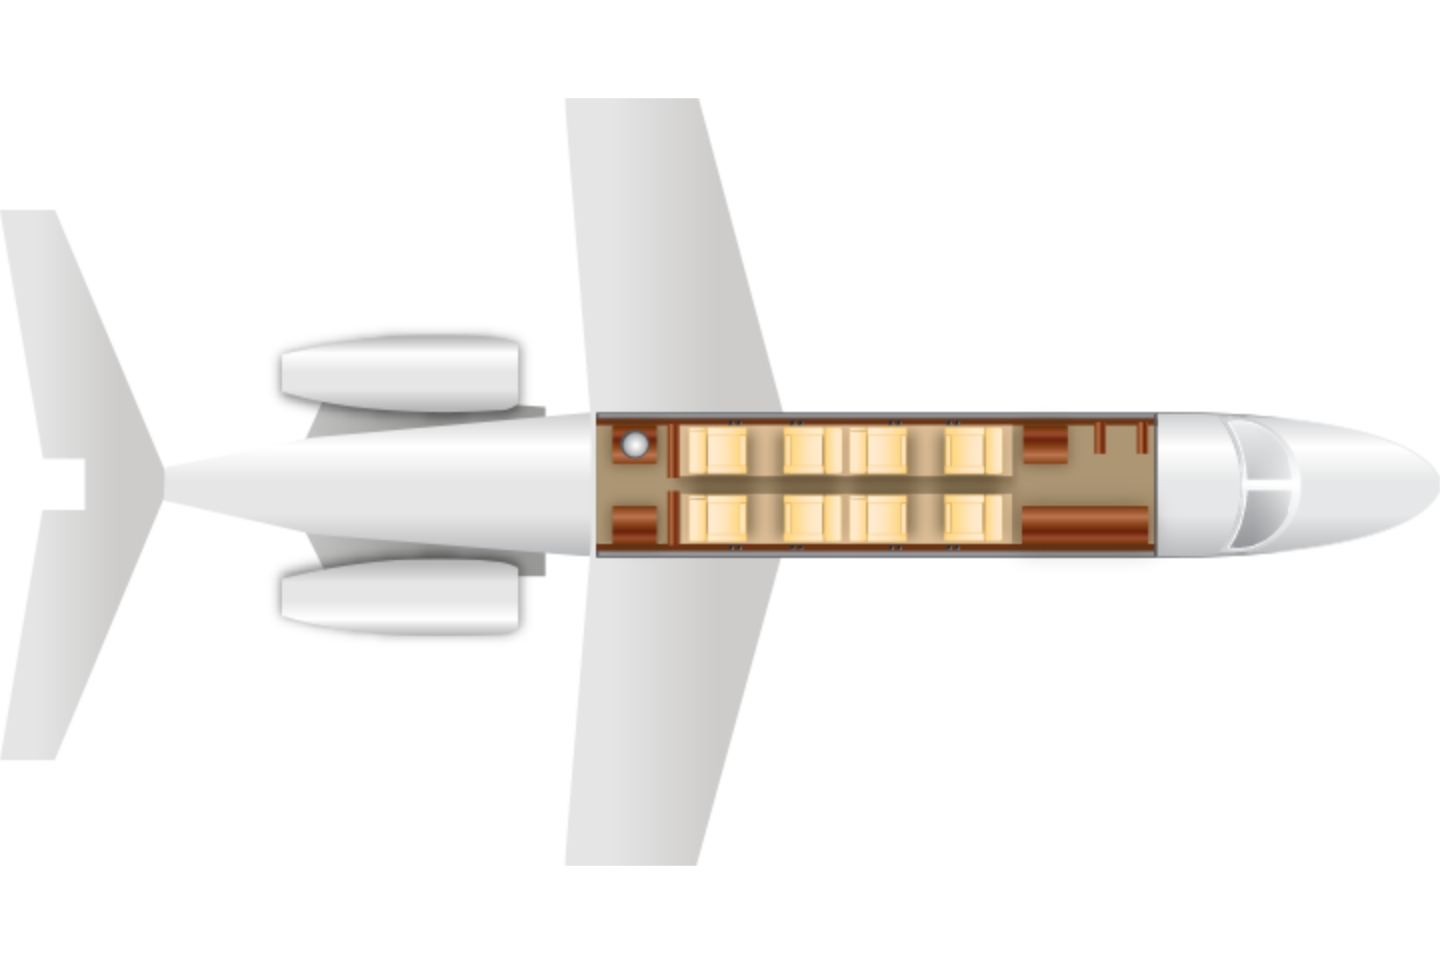 learjet-45-transparent-1412620788.png Floor Plan View